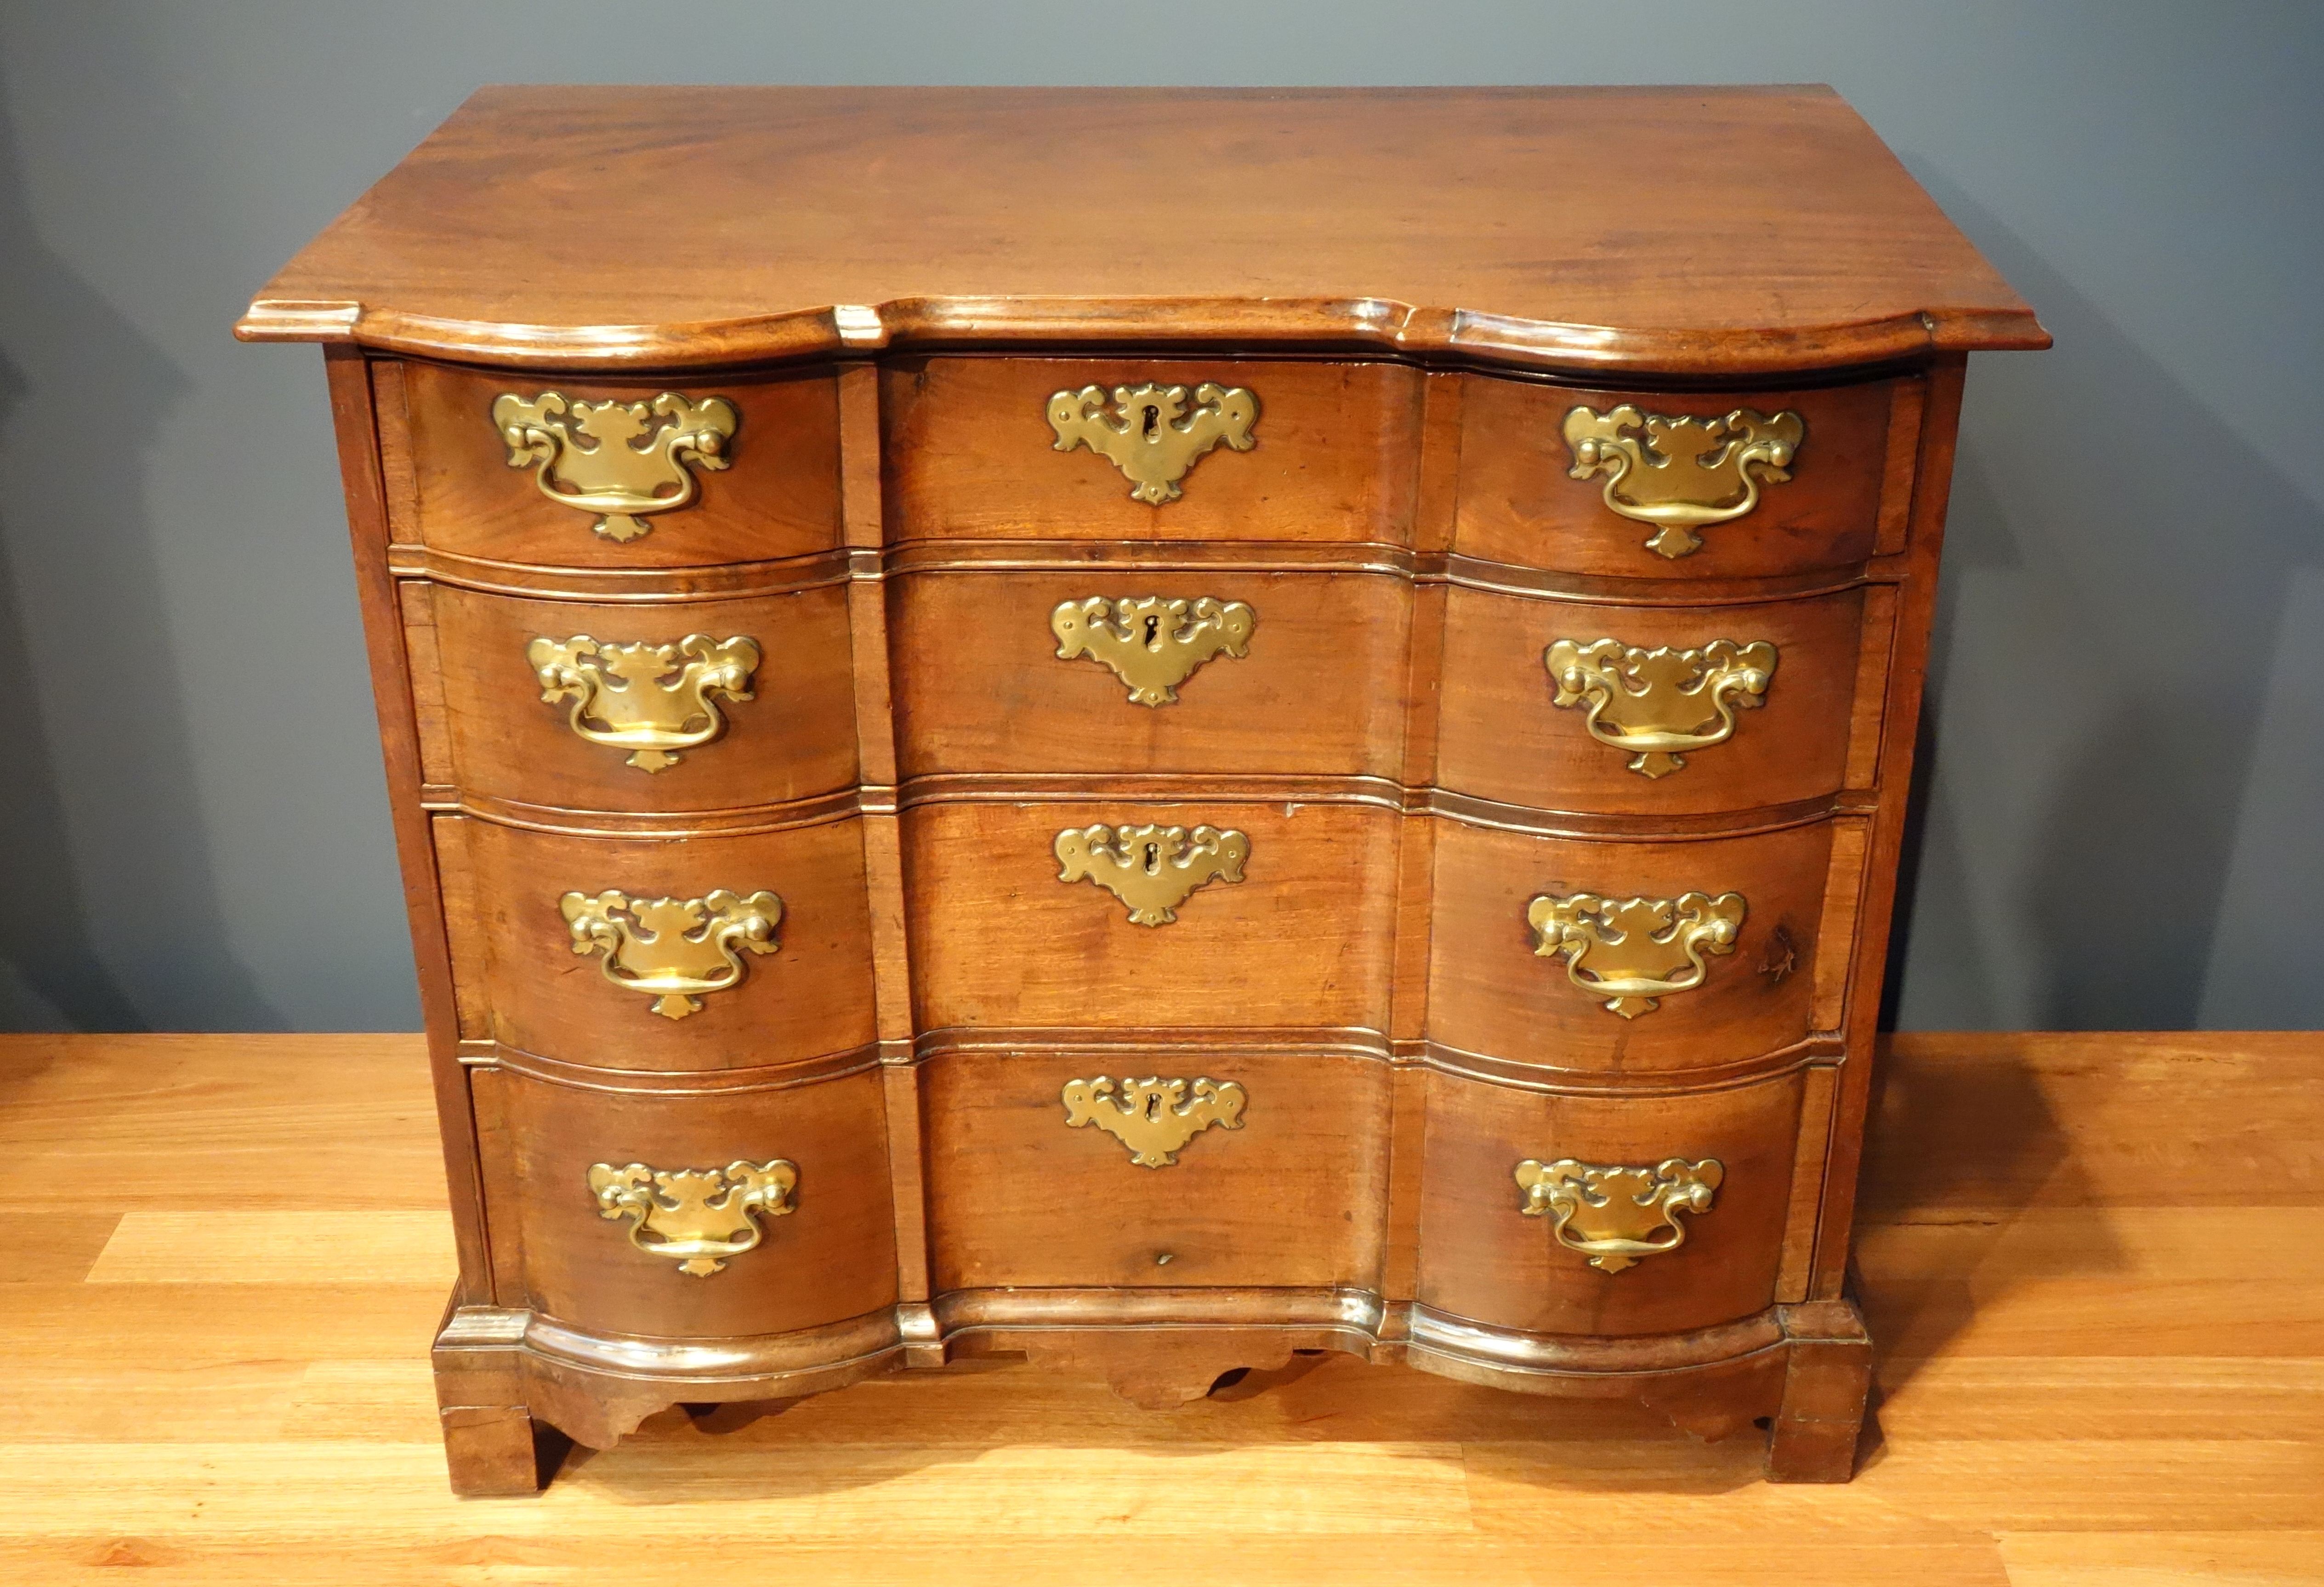 Filechest Of Drawers Maker Unknown Boston Massachusetts C